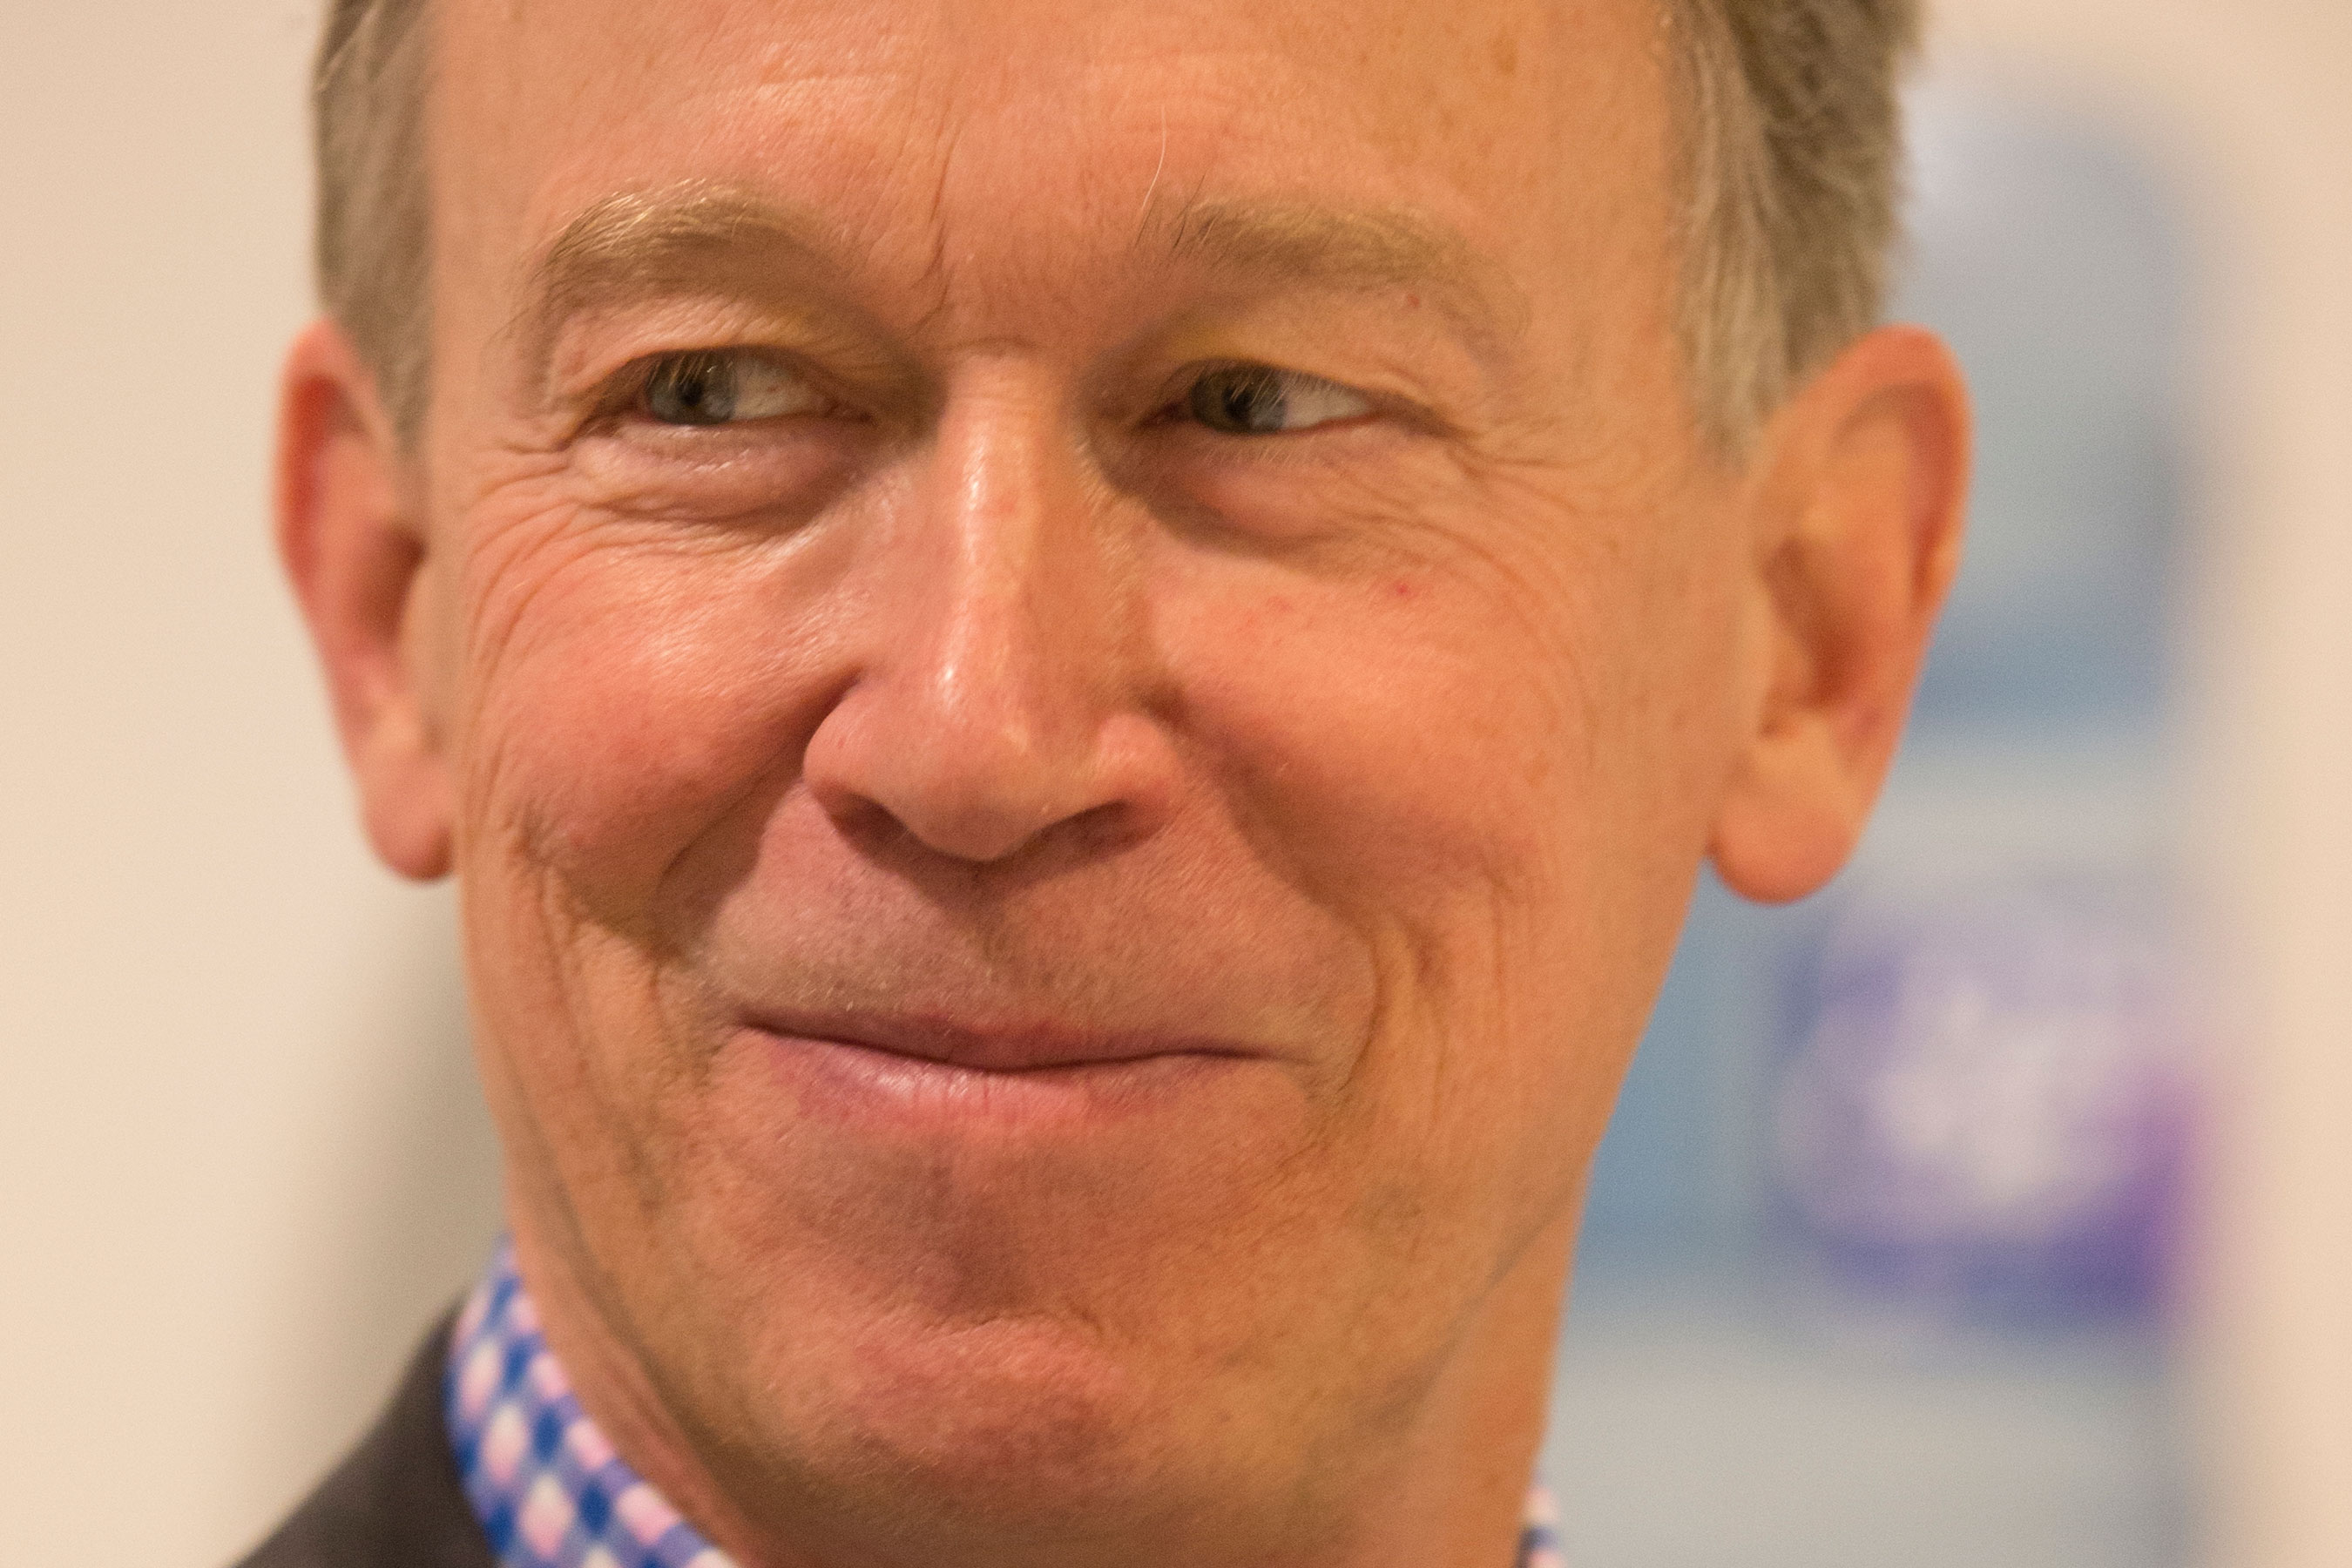 Photo: Hickenlooper Iowa 6 | Cropped Close Up - HV